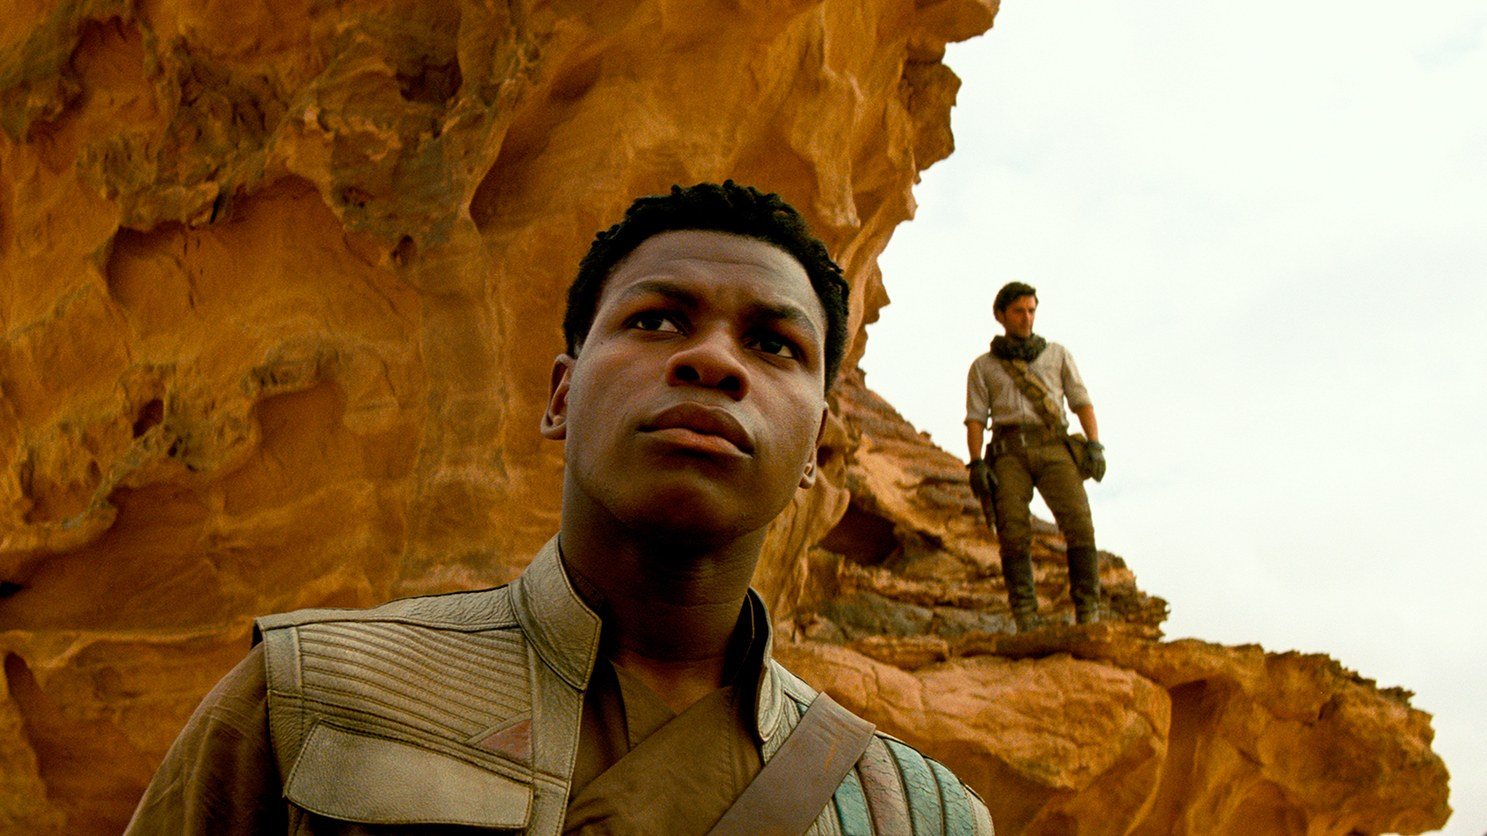 Finn's origin will be explored in 'The Rise of Skywalker'